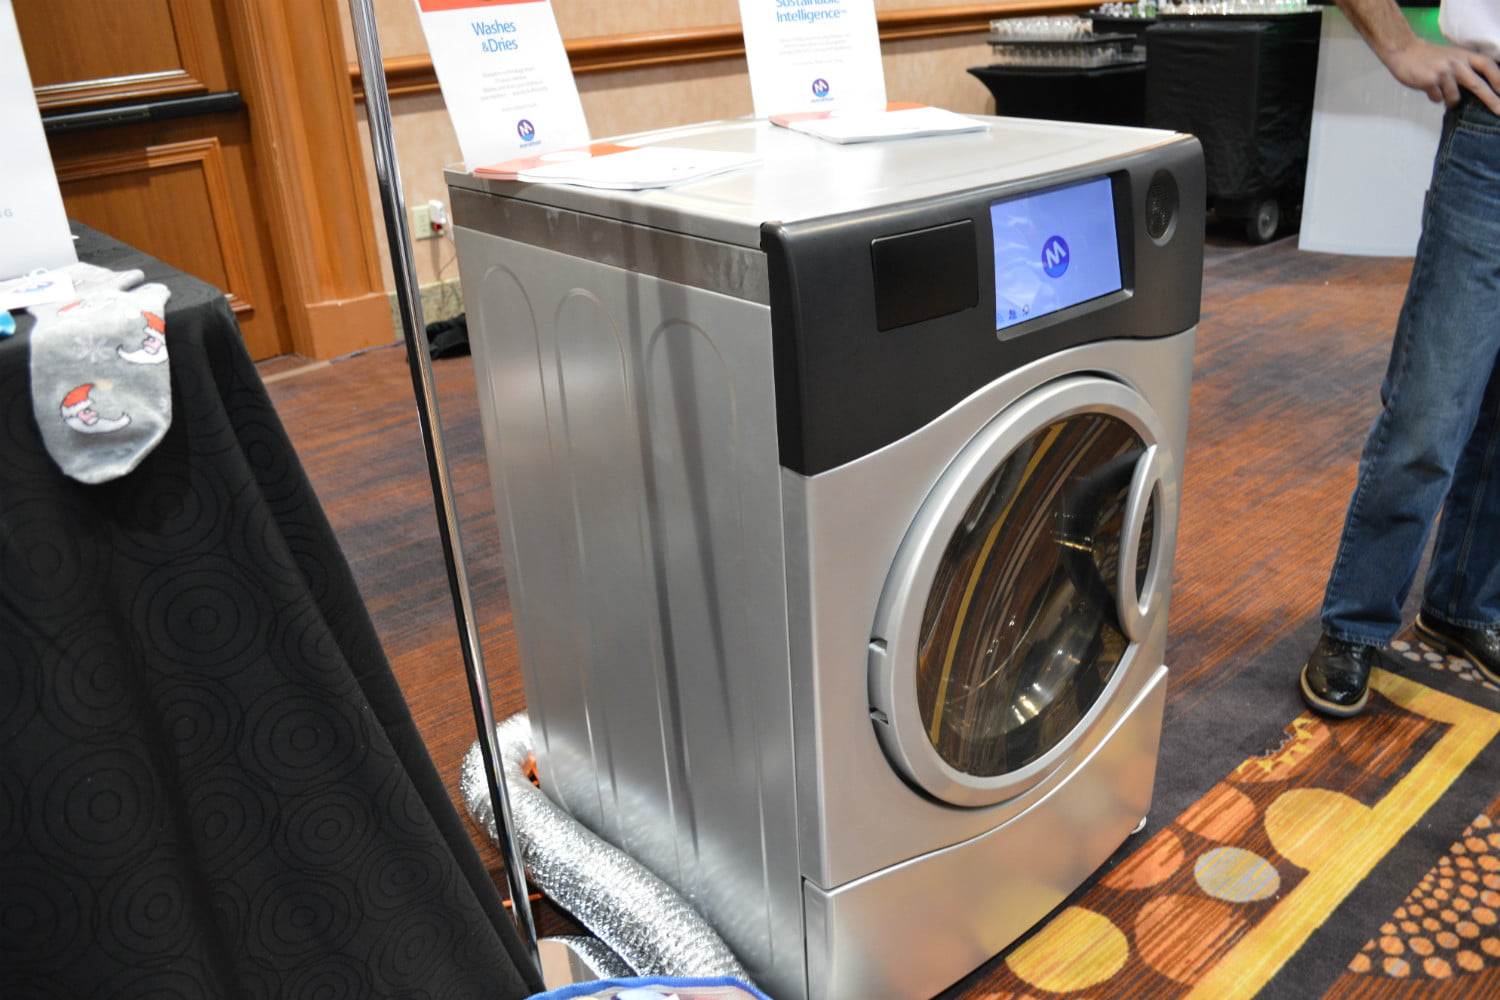 the marathon laundry machine is a washer and dryer in one 2